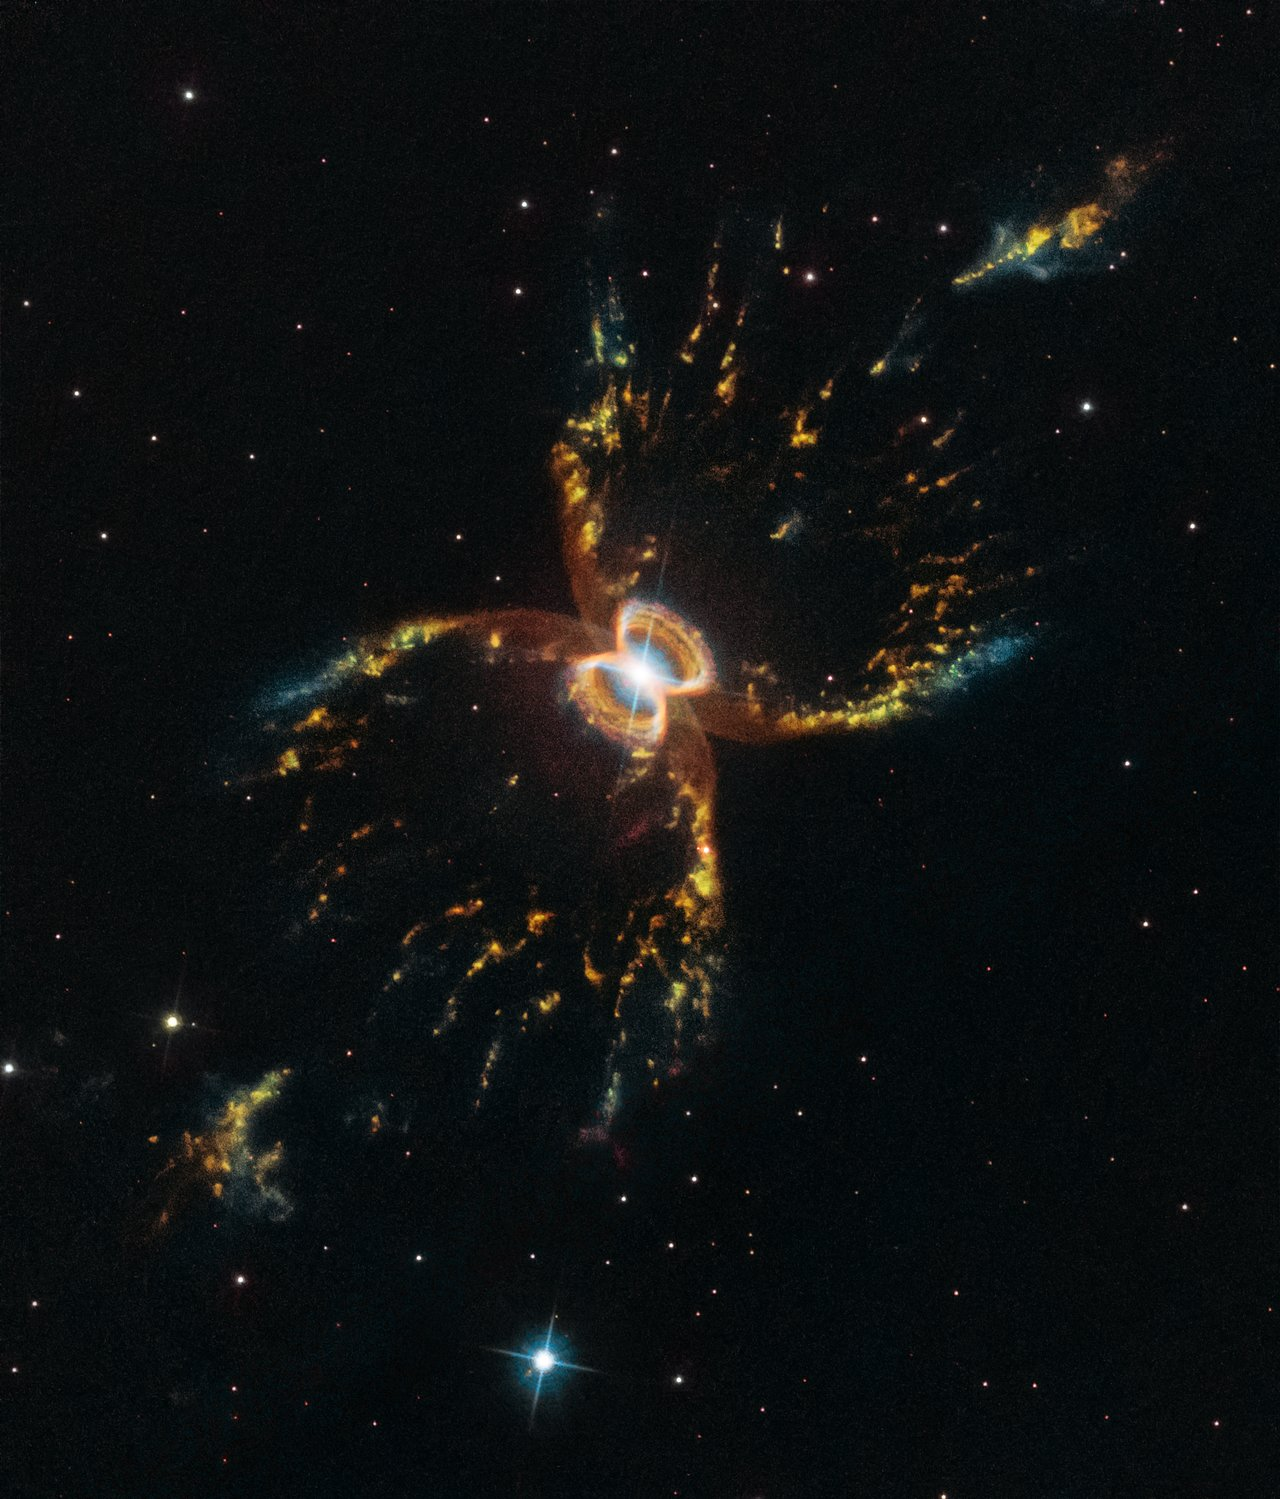 Hubble Celebrates its 29th Birthday with Unrivaled View of the Southern Crab Nebula